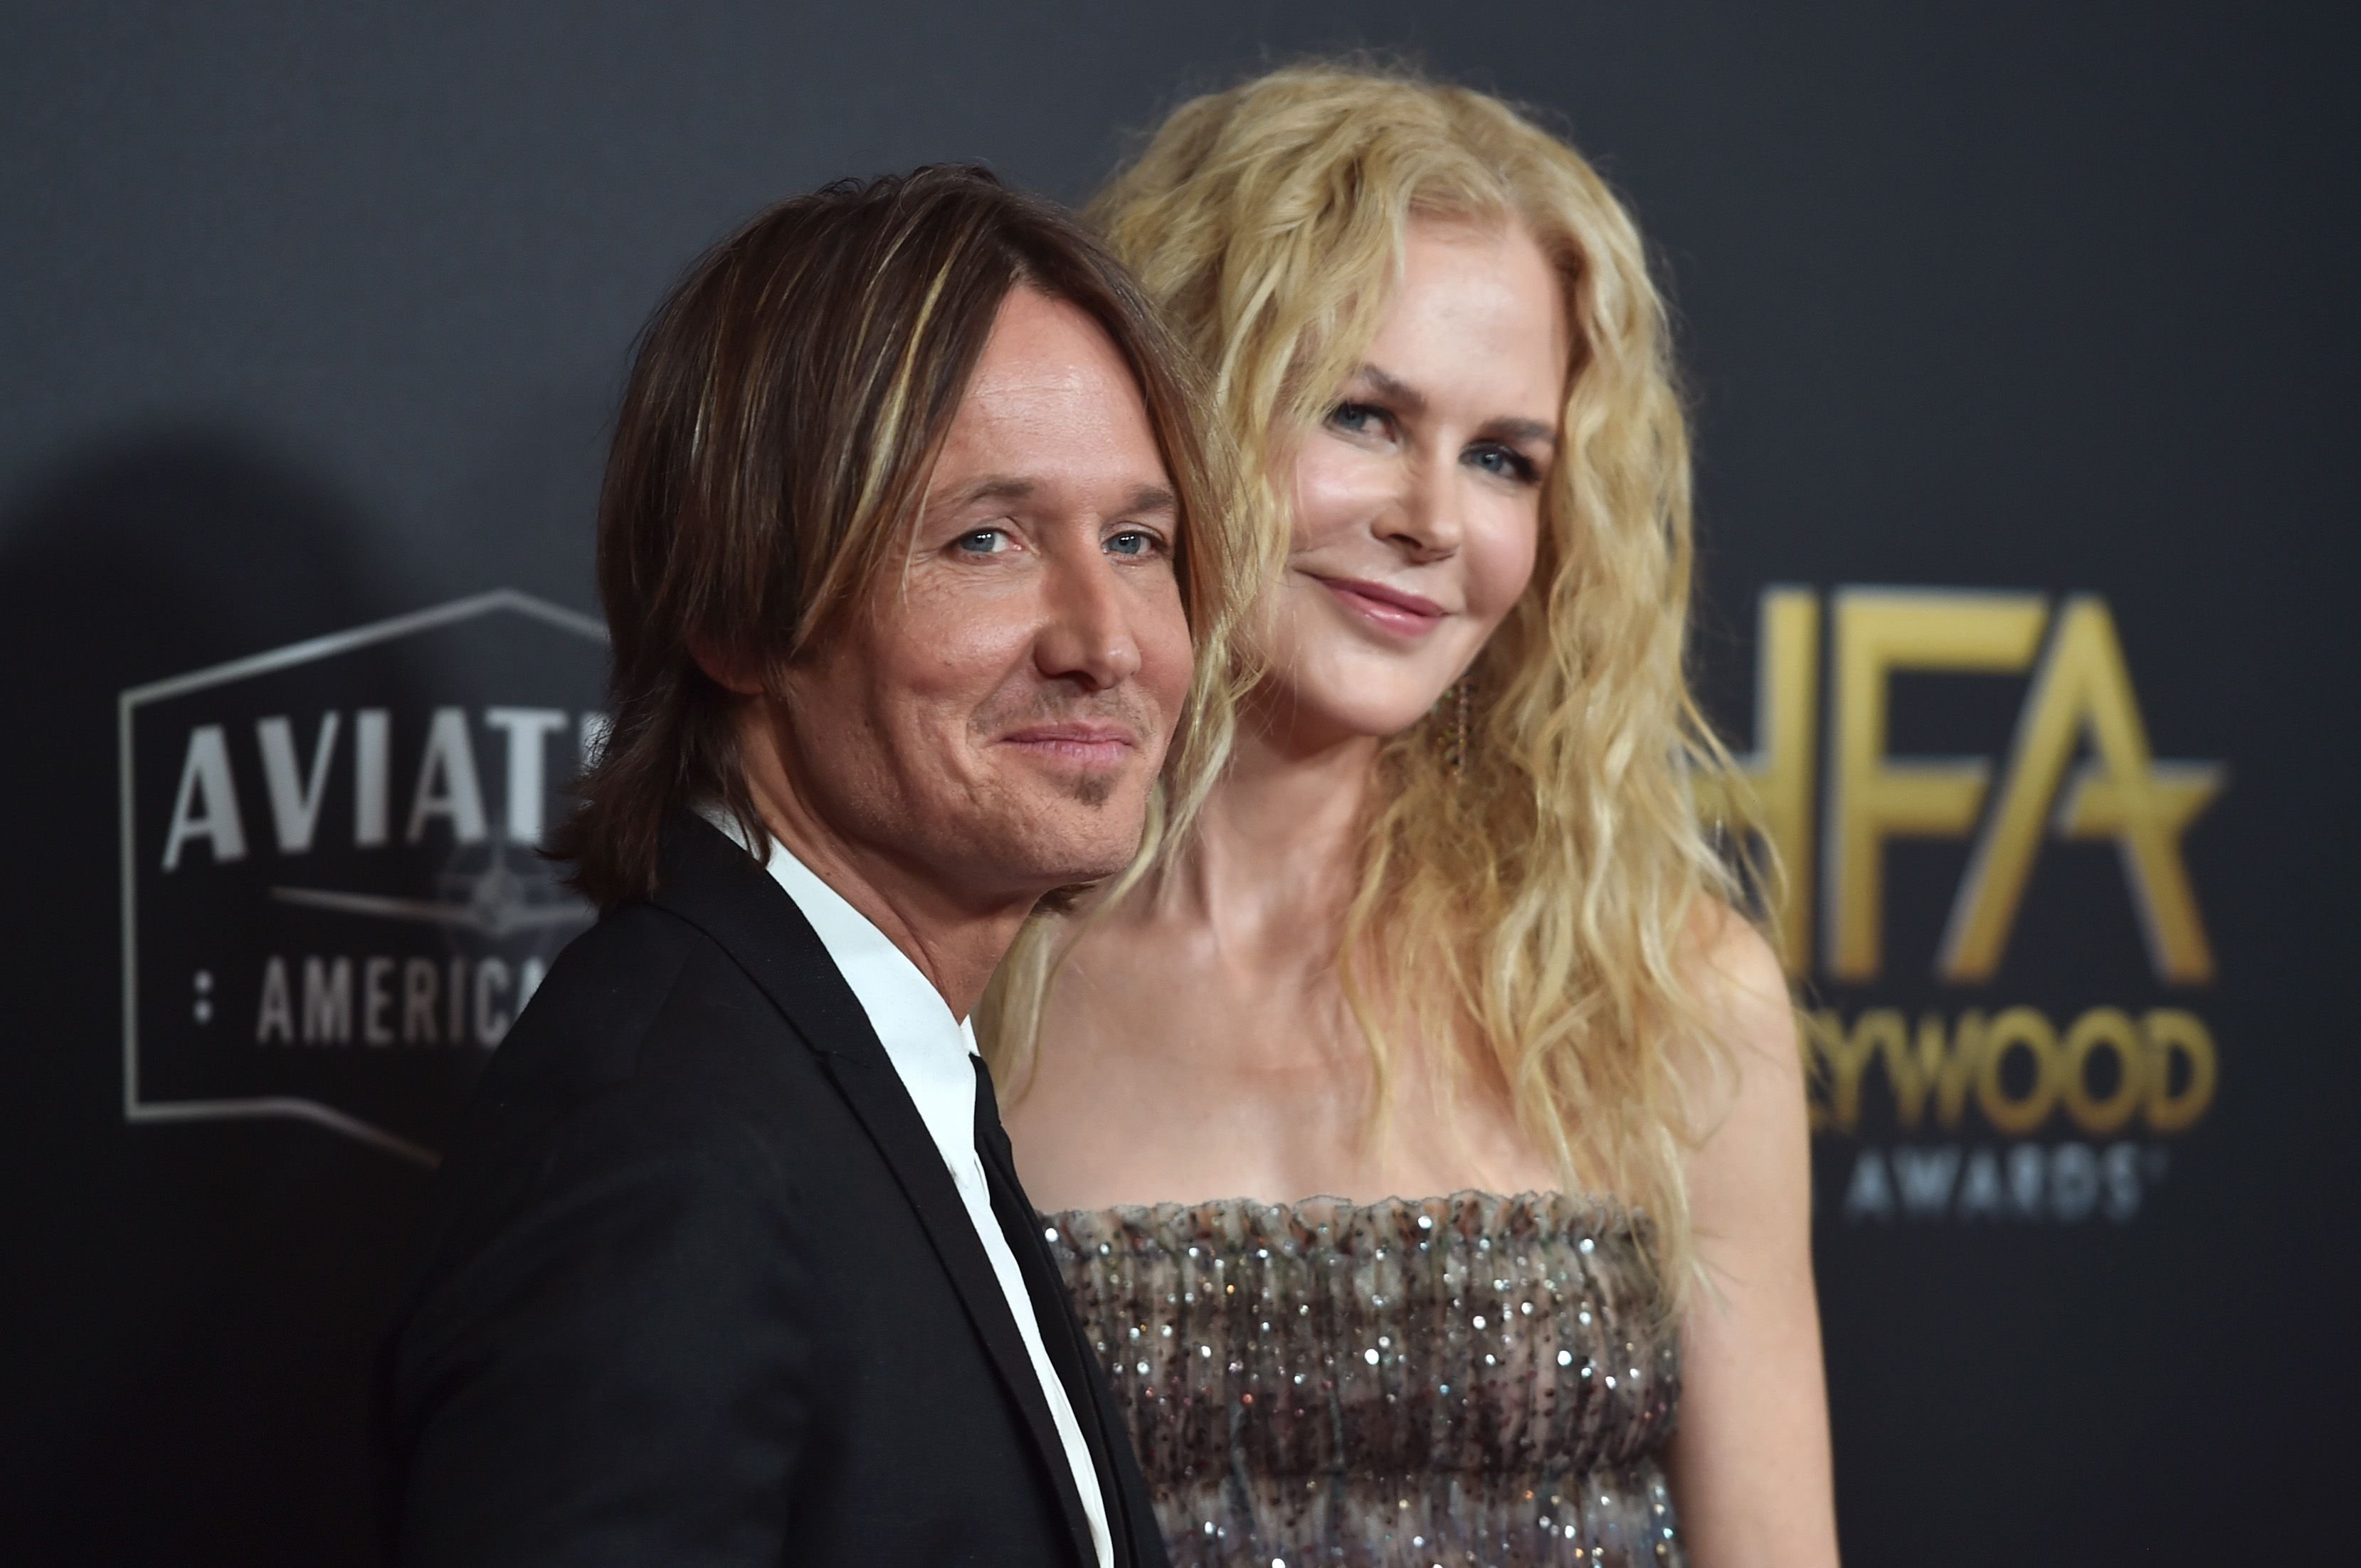 Keith Urban and Nicole Kidman at the 22nd Annual Hollywood Film Awards at The Beverly Hilton Hotel on November 4, 2018 | Photo: Getty Images